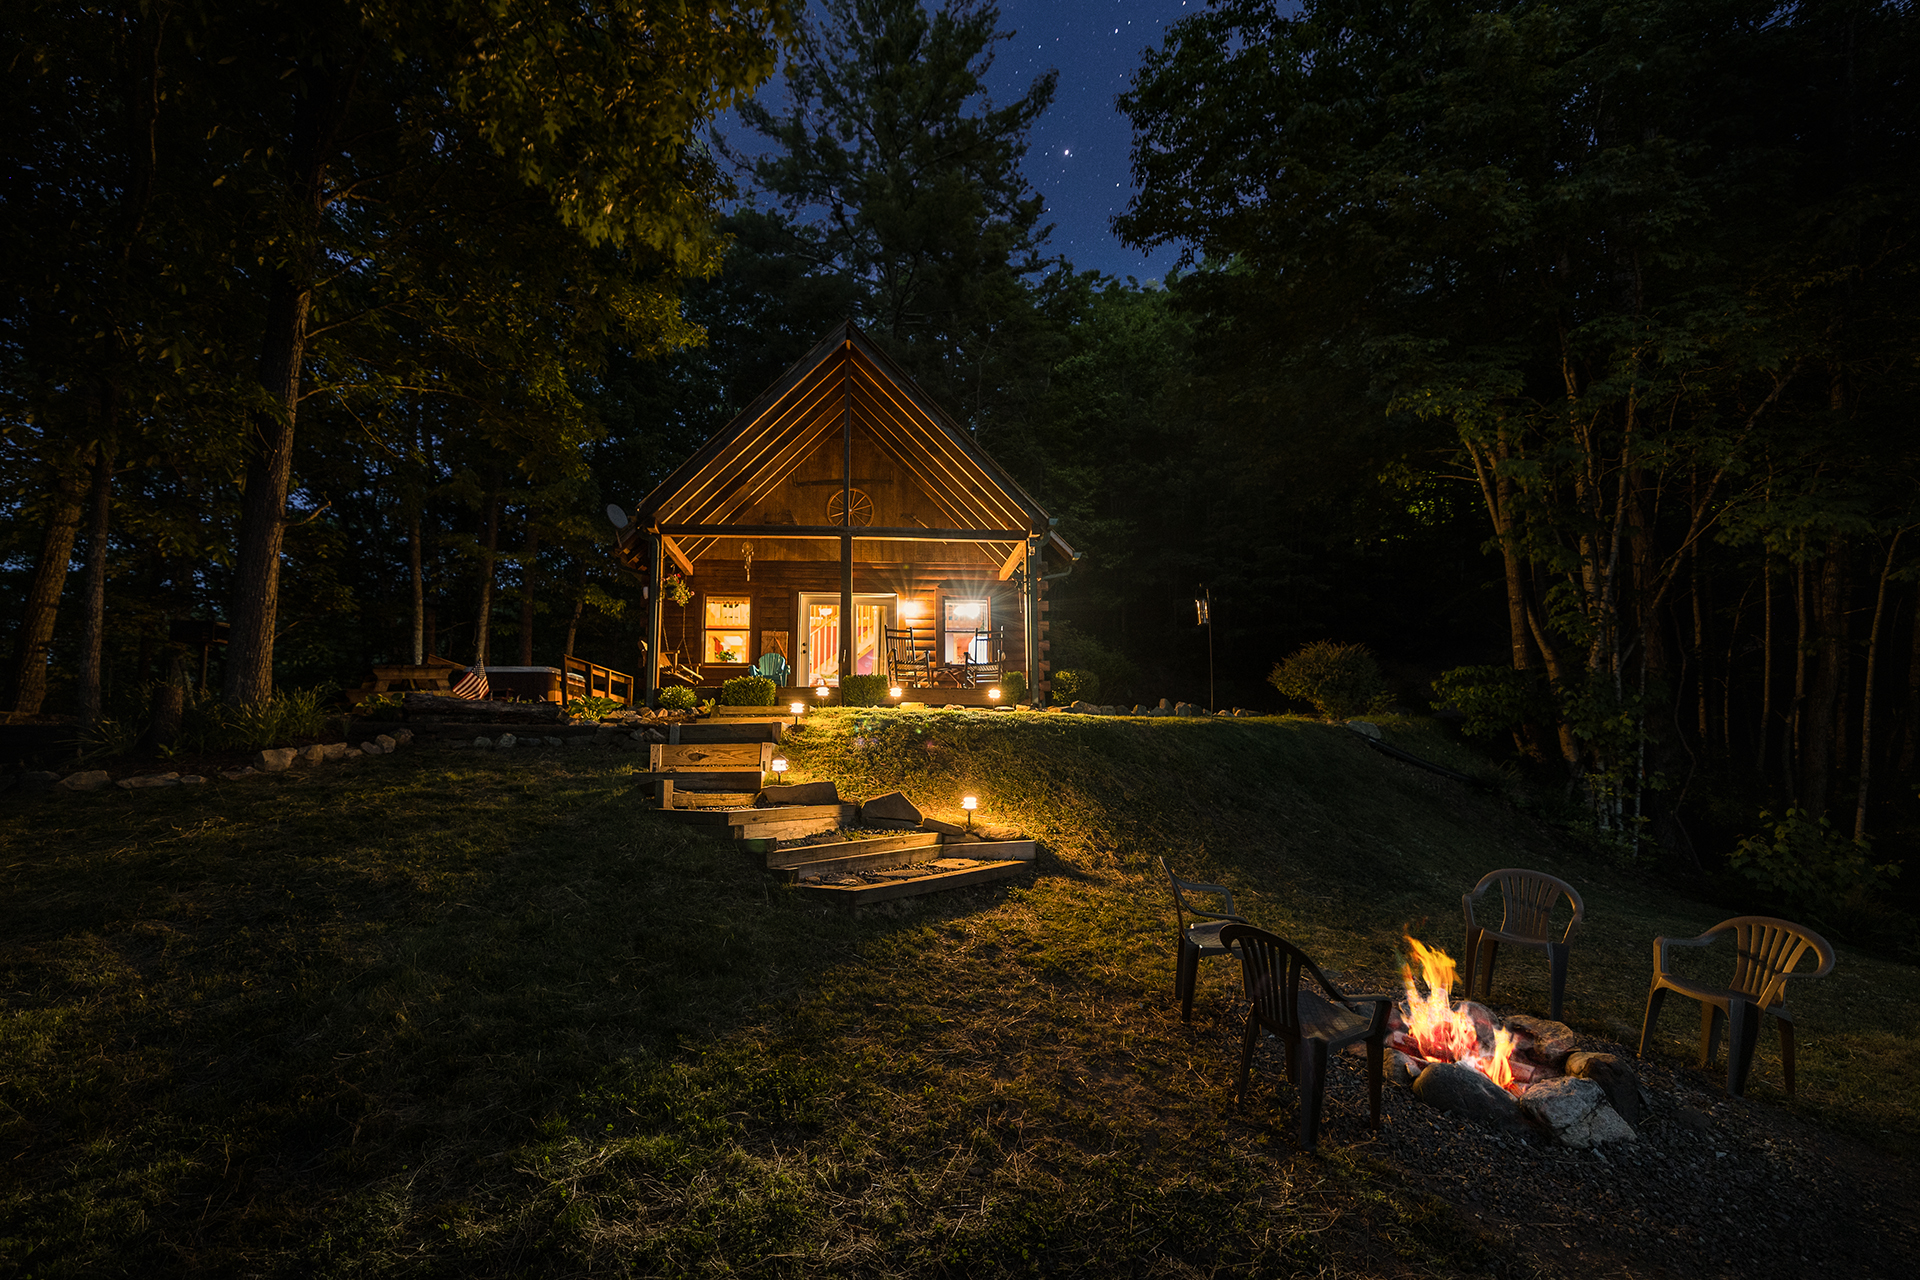 Evening Is A Great Time To Sit On The Front Porch And Watch The Fireflies  Play In The Cool Nc Smoky Mountain Air.